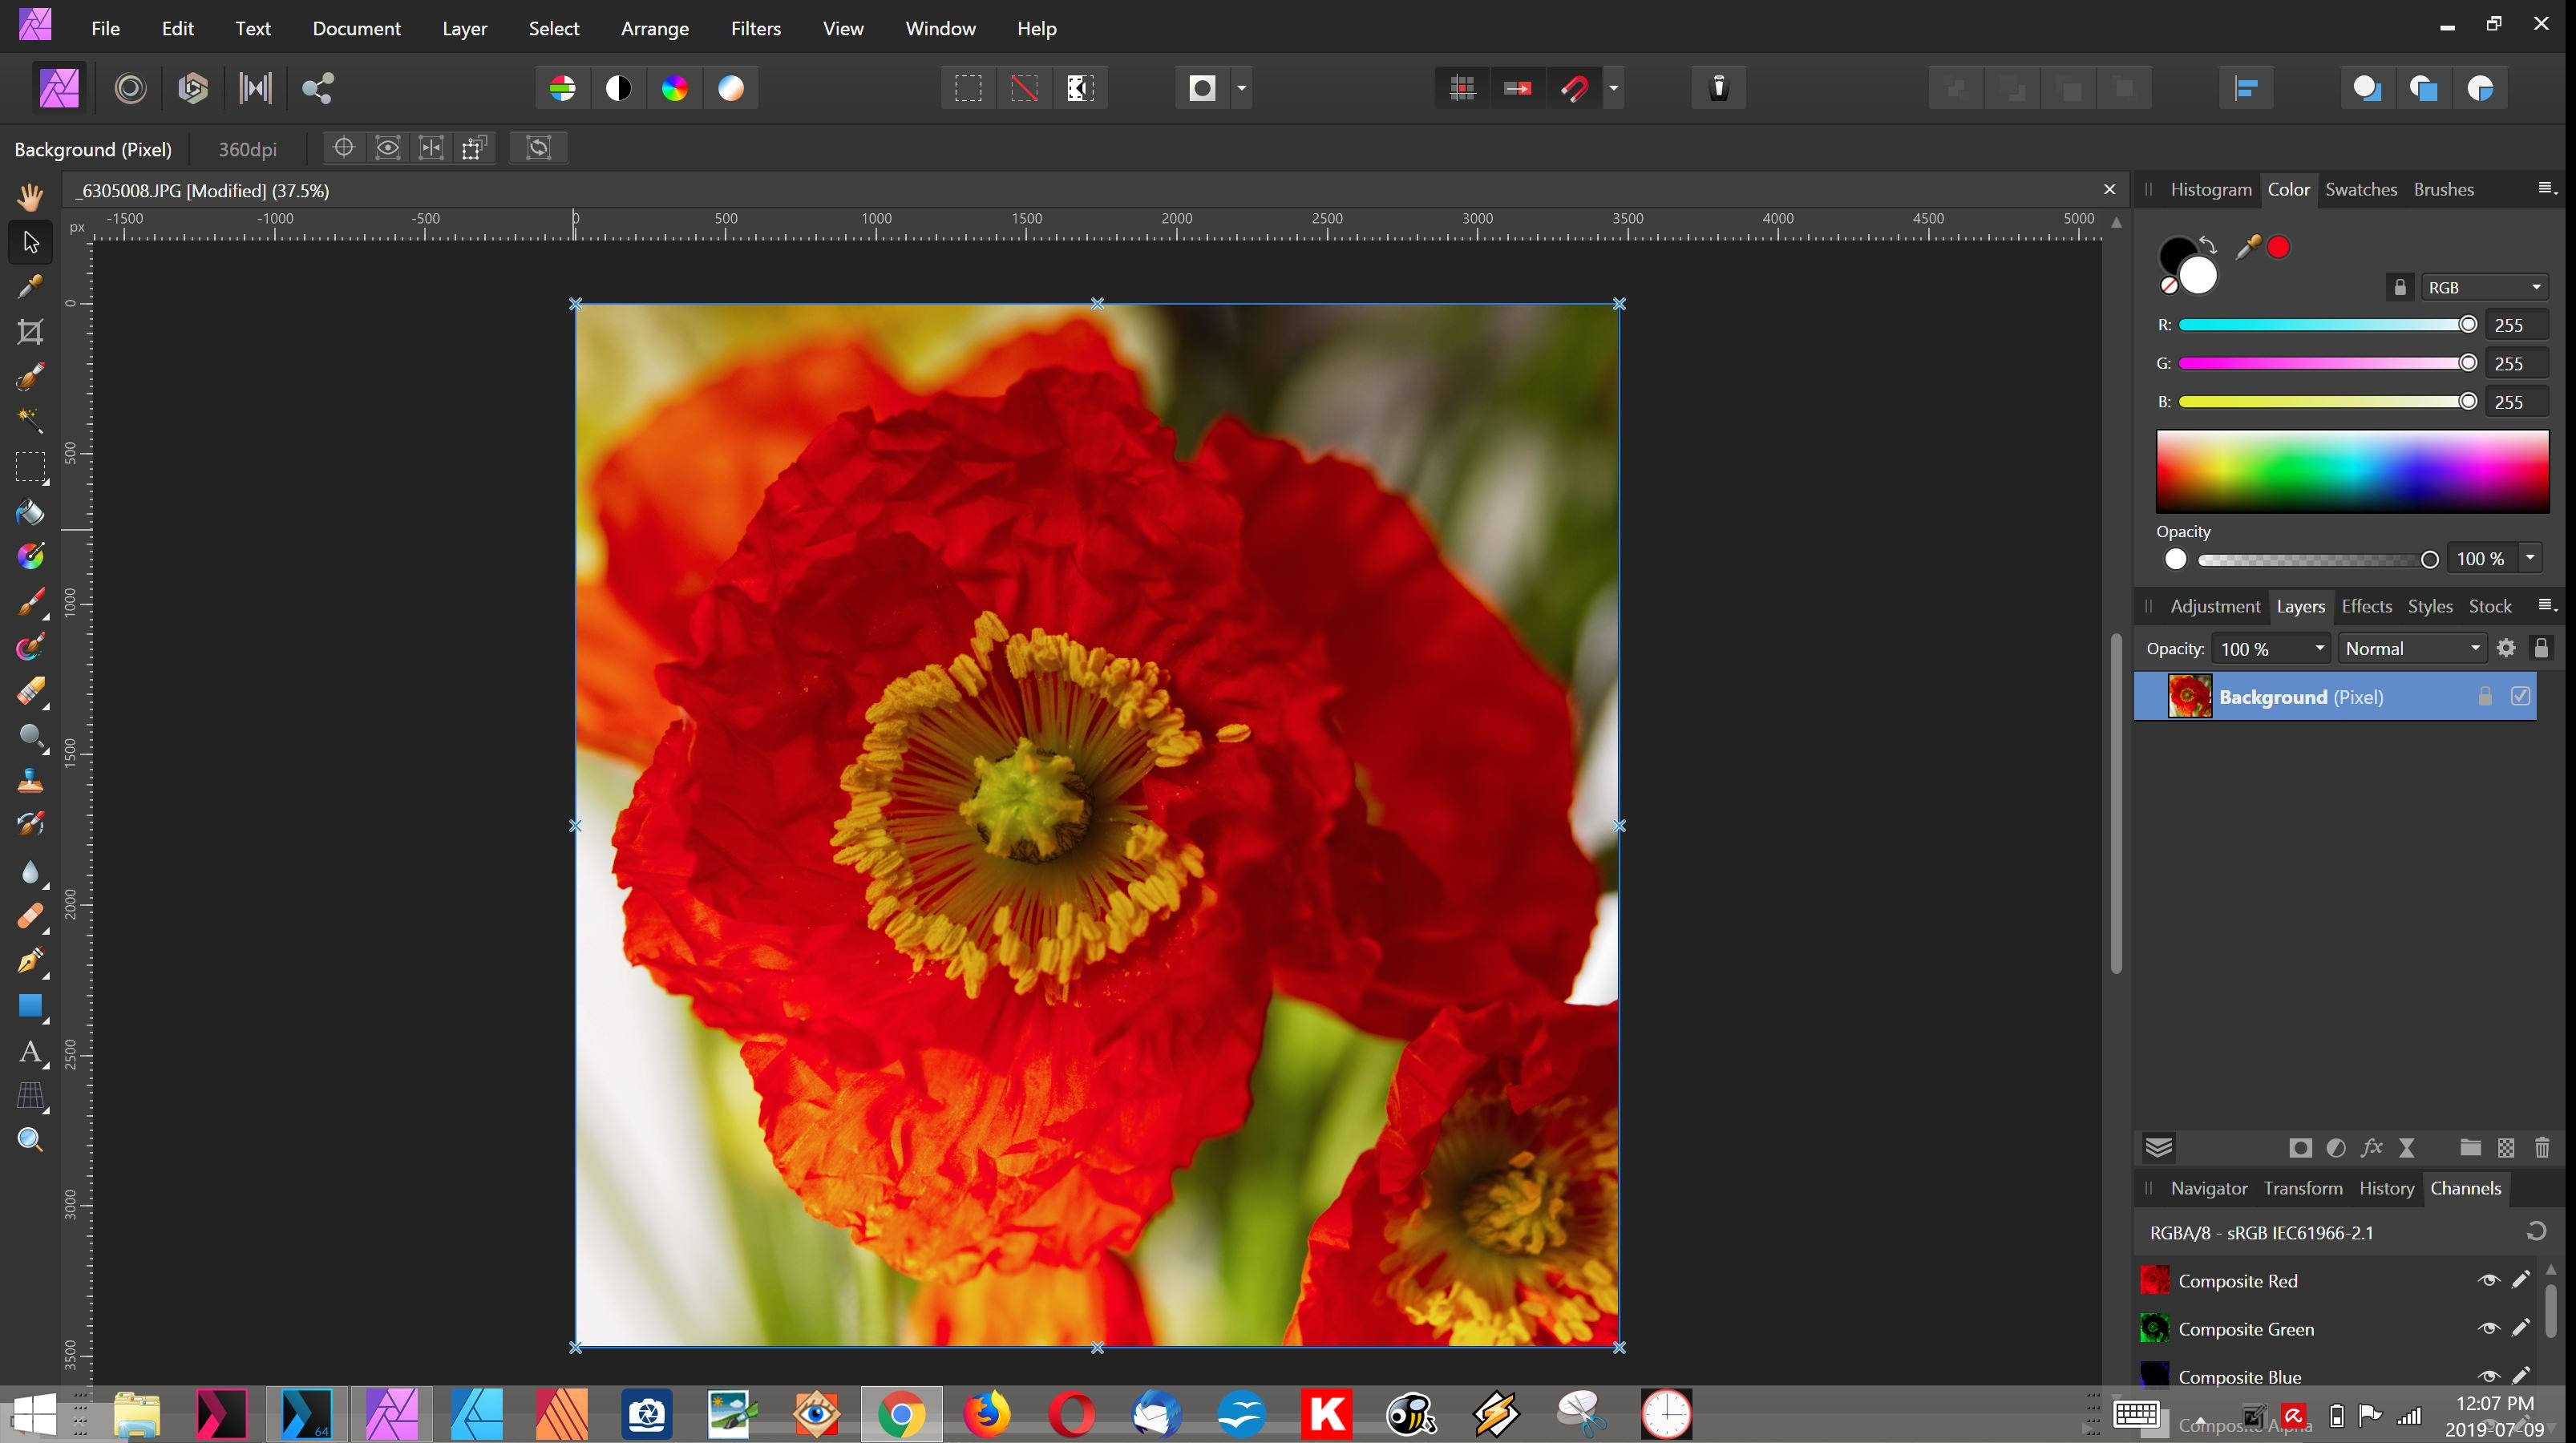 Size of Nik Effects interface in Affinity Photo - Affinity on Desktop  Questions (Mac and Windows) - Affinity | Forum